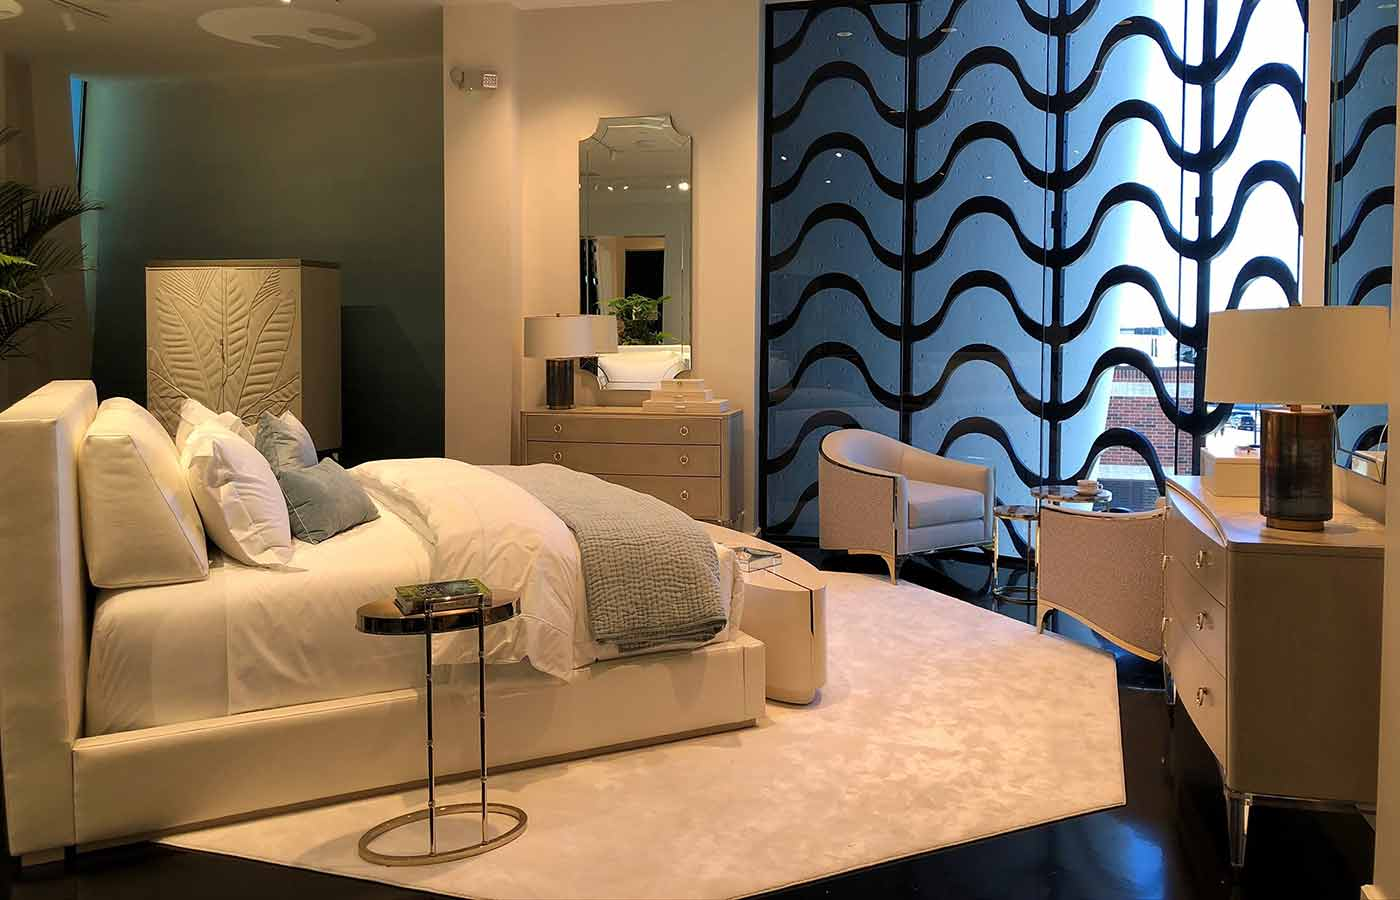 Bedroom | Contemporary Modern Luxury Exclusive Designer Handcrafted Furniture | Sandton Johannesburg